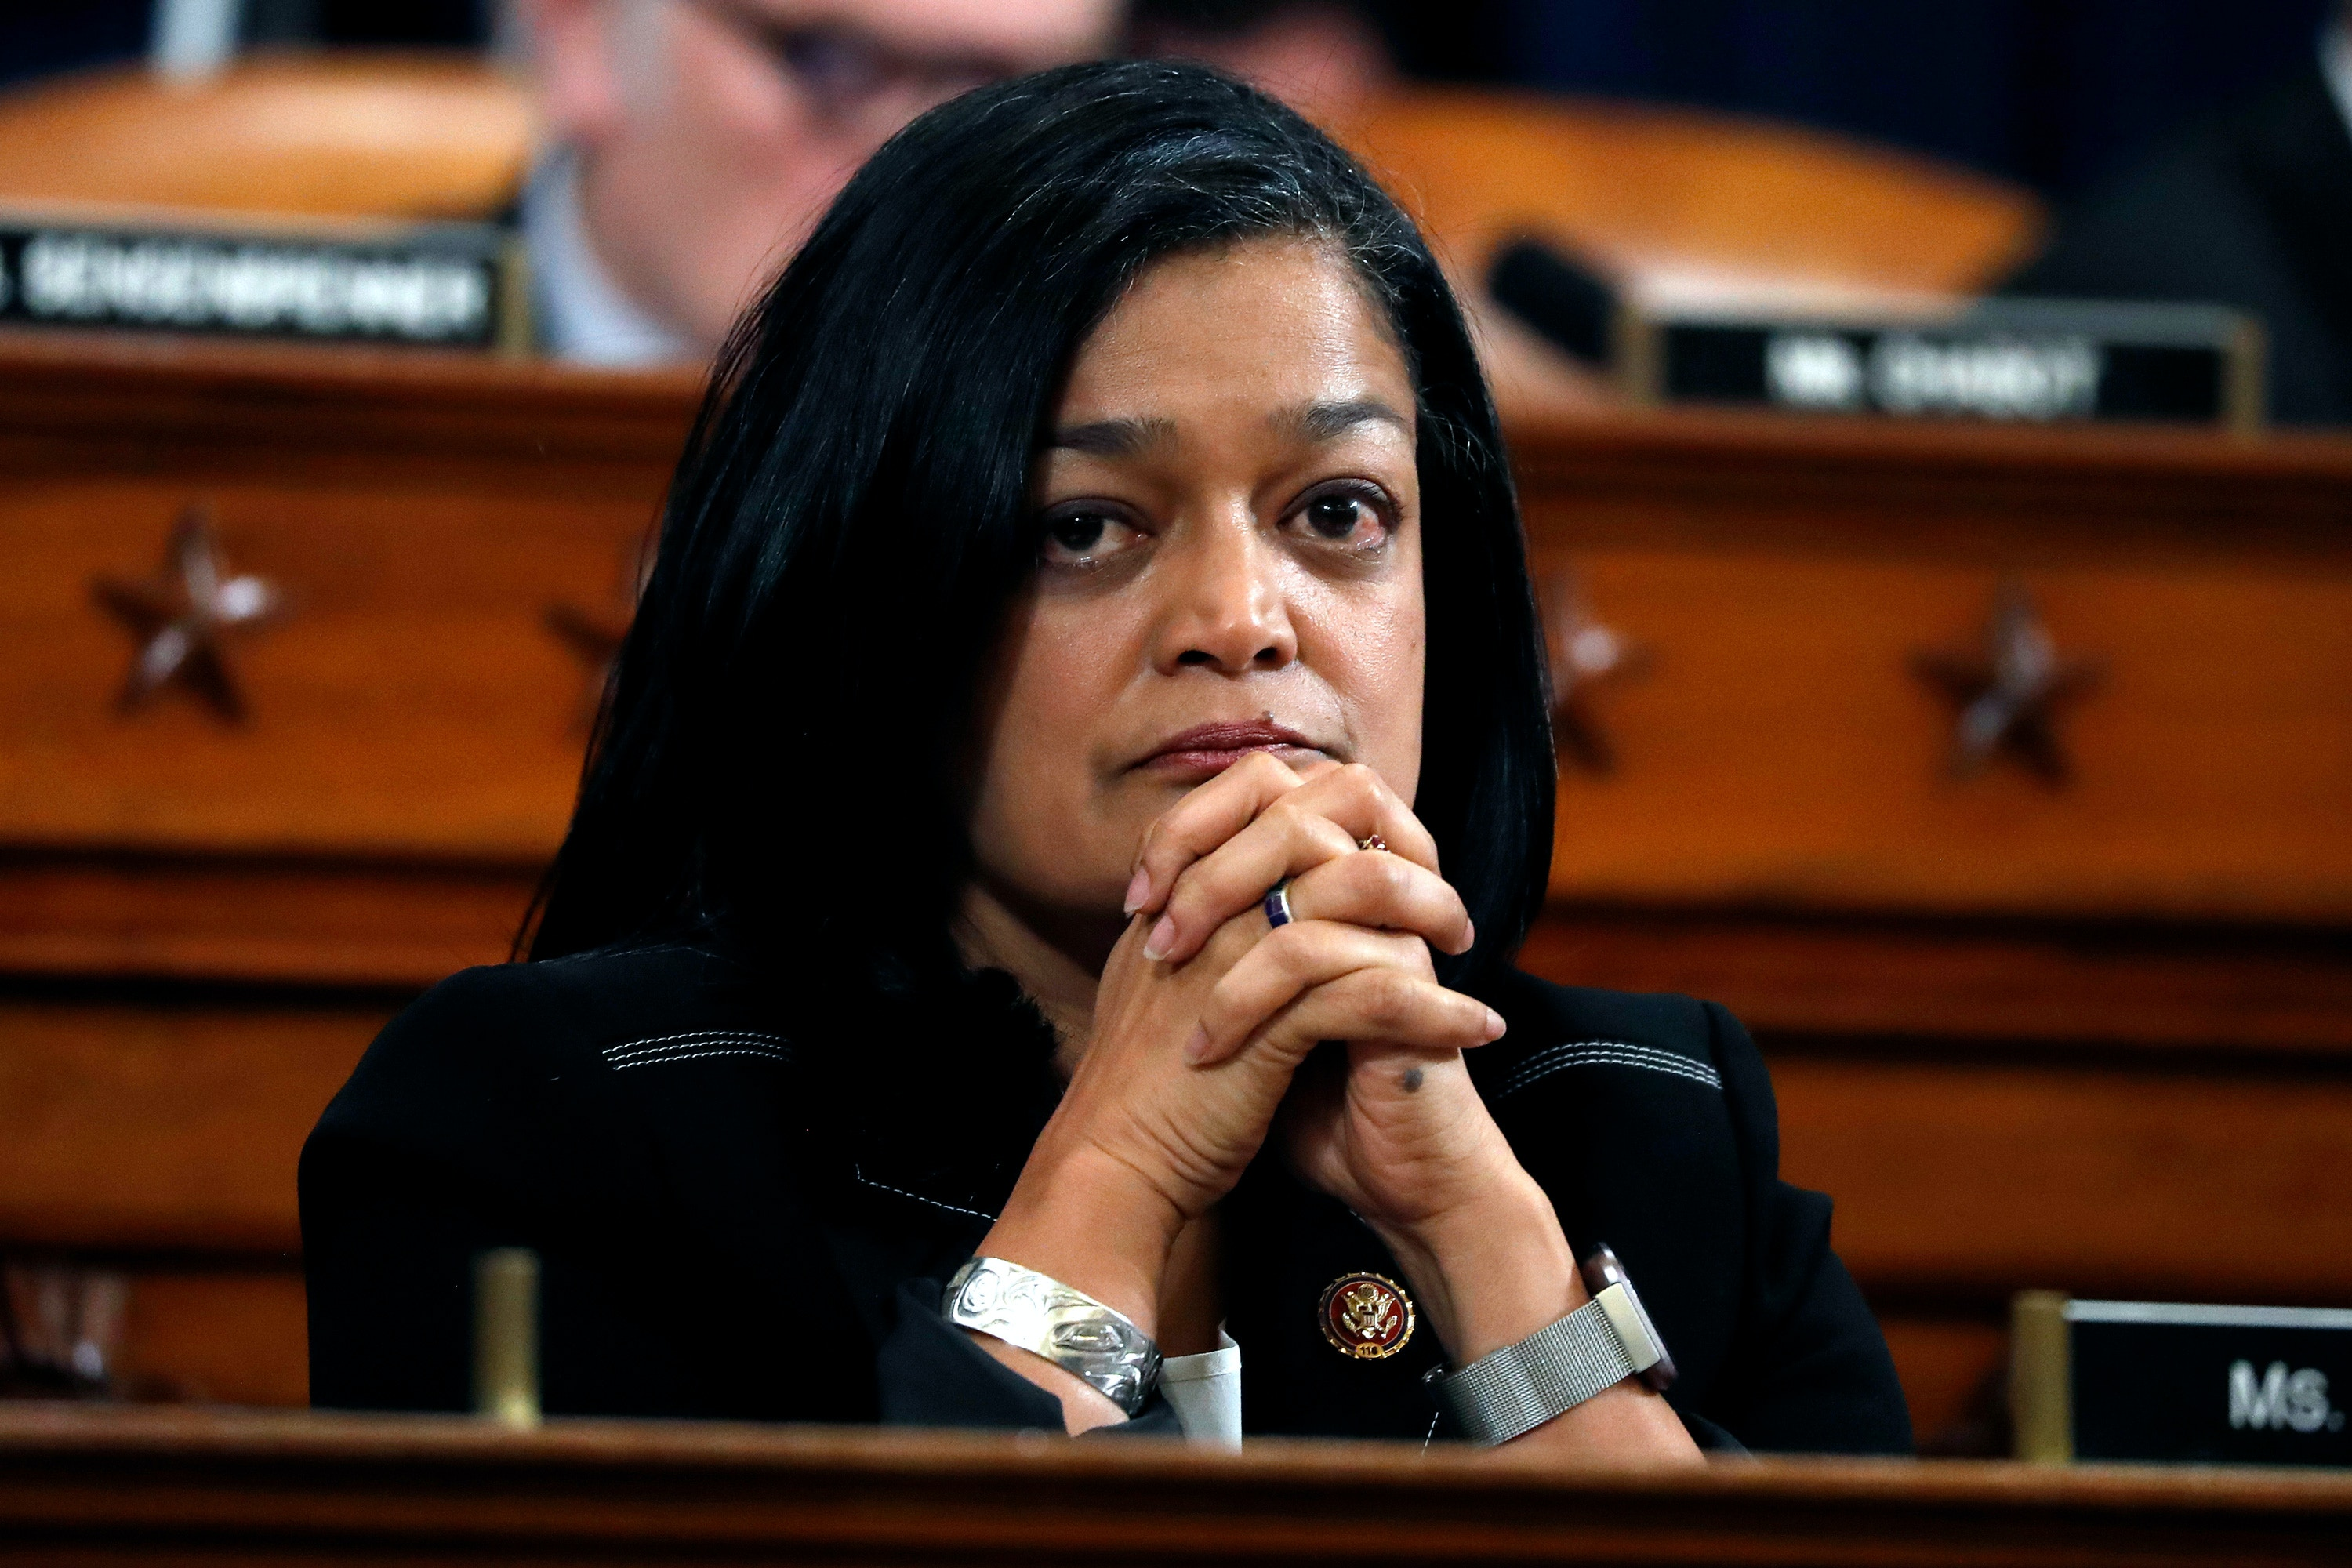 Rep. Pramila Jayapal, D-Wash., listens during a House Judiciary Committee markup of the articles of impeachment against President Donald Trump, Wednesday, Dec. 11, 2019, on Capitol Hill in Washington. (AP Photo/Jacquelyn Martin)